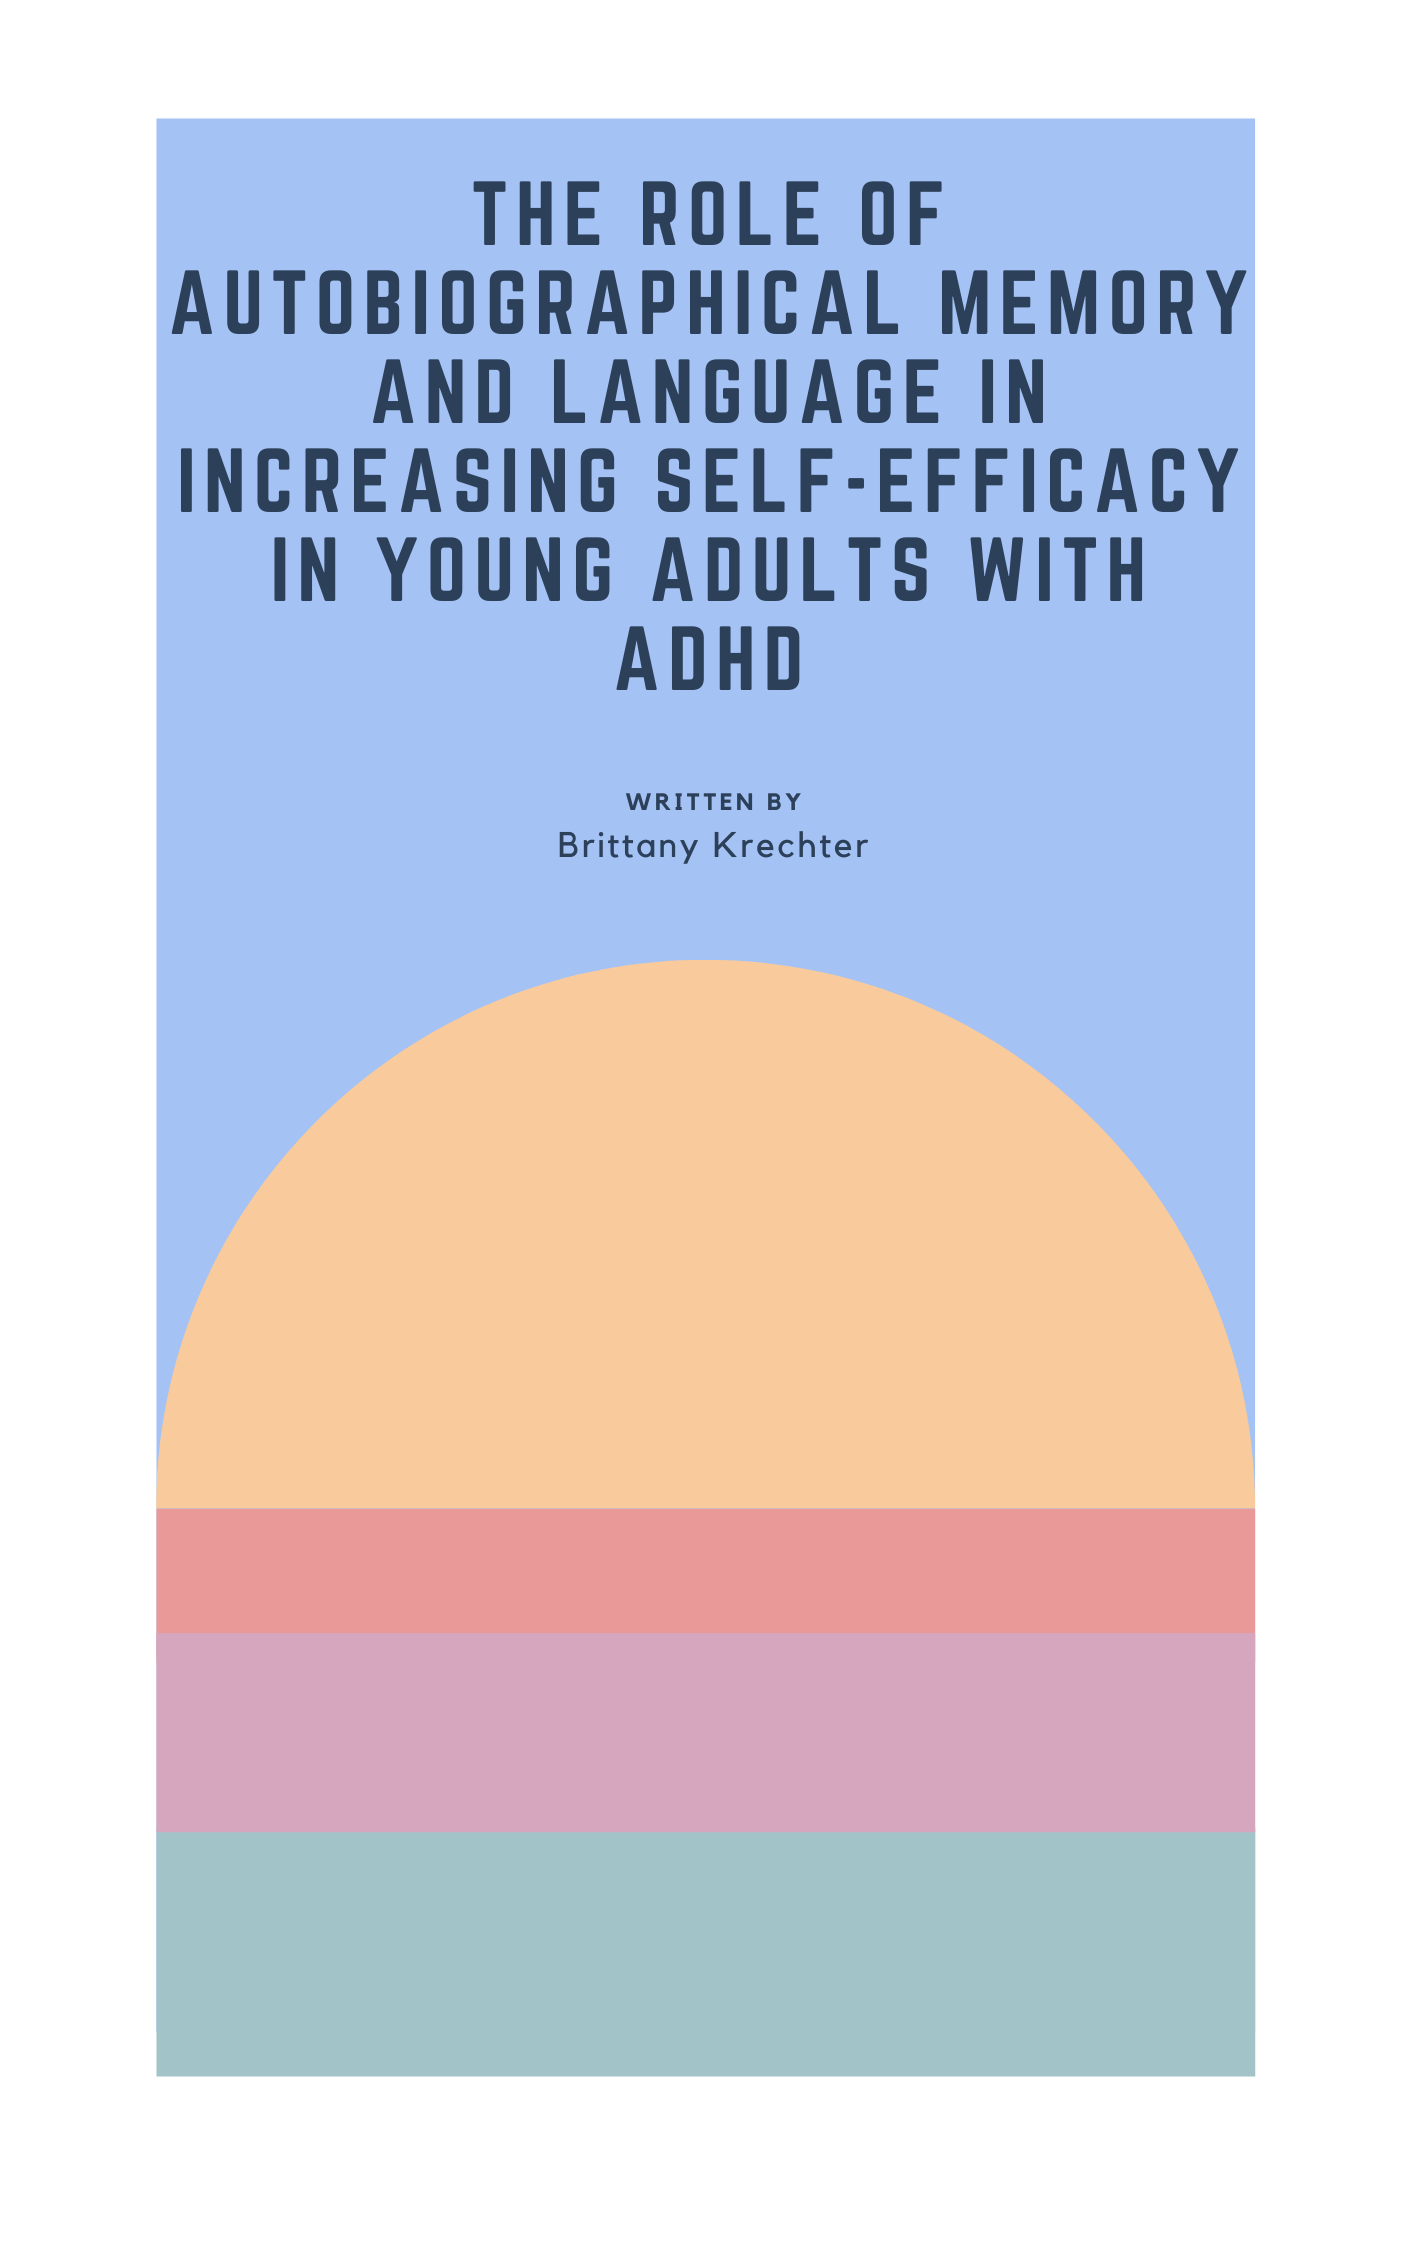 Cover image for The Role of Autobiographical Memory and Language in Increasing Self-Efficacy in Young Adults with ADHD